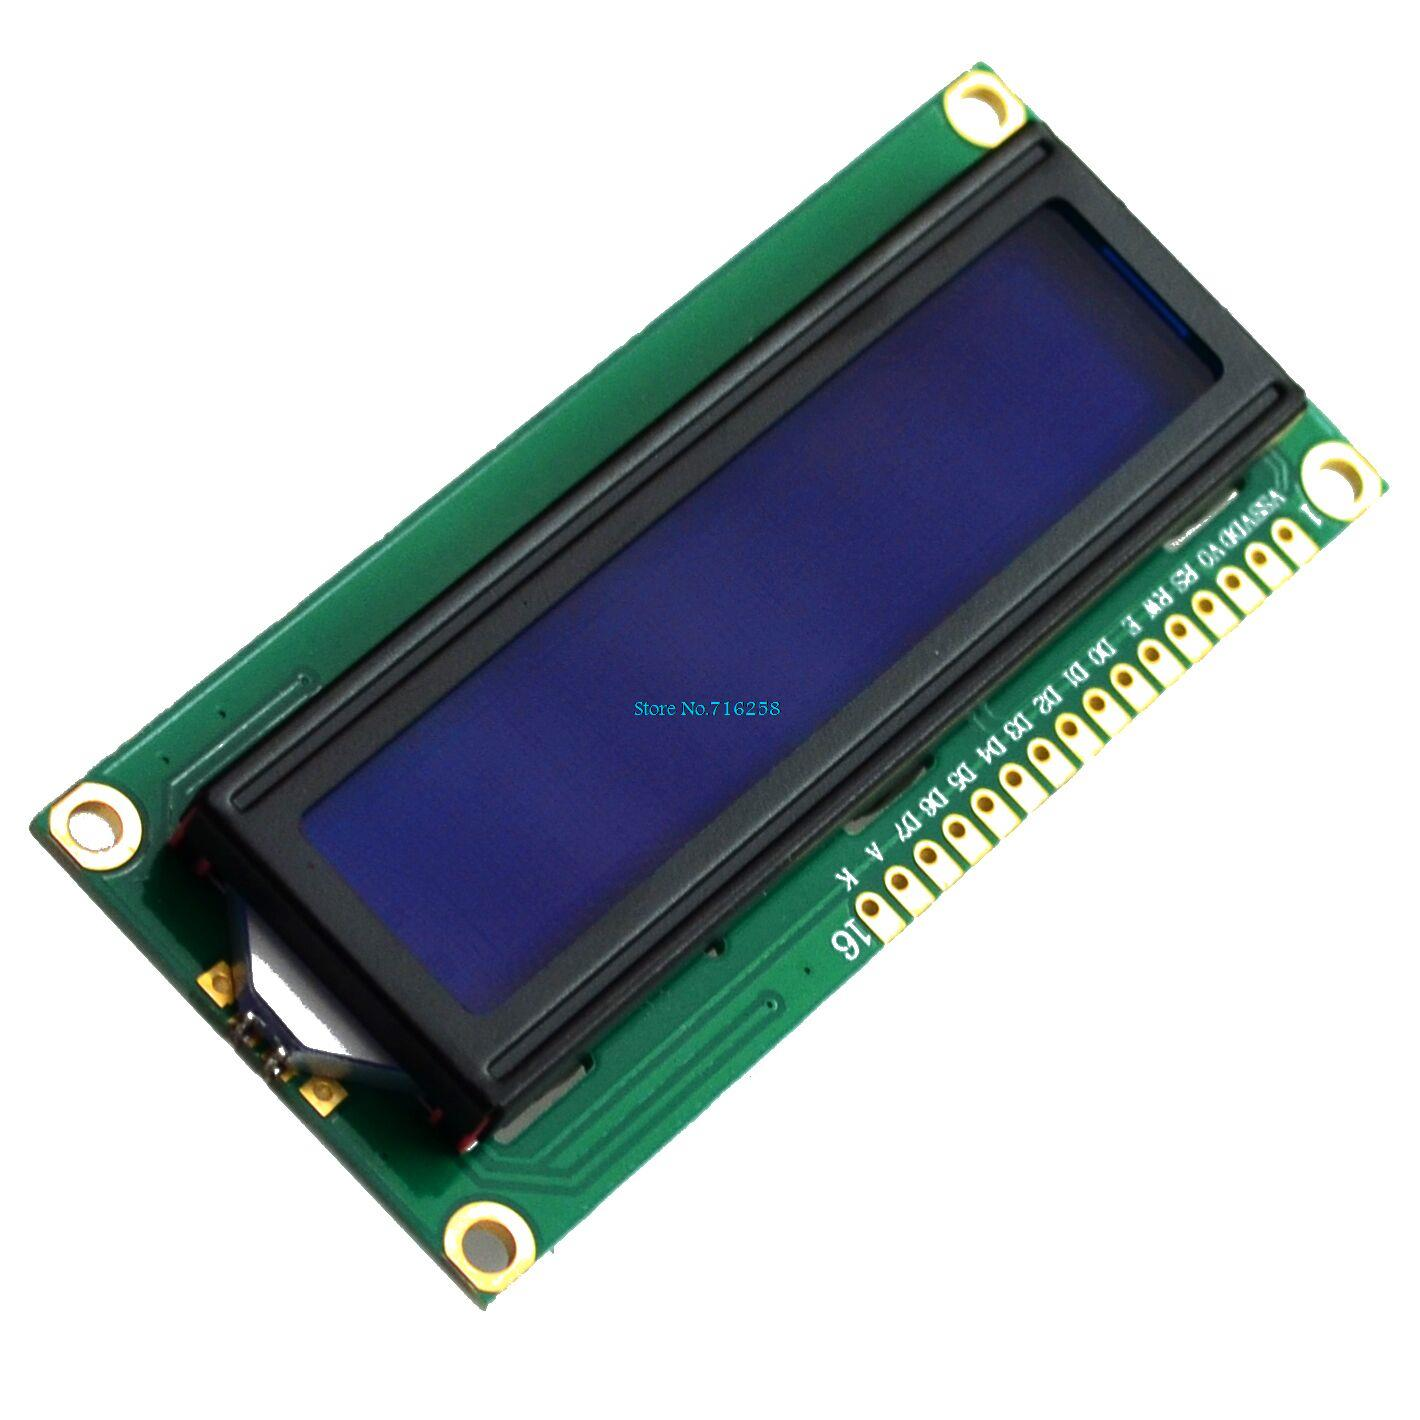 1602 16x2 Character LCD 16x2, LCM Display Module blue or green blacklight white character